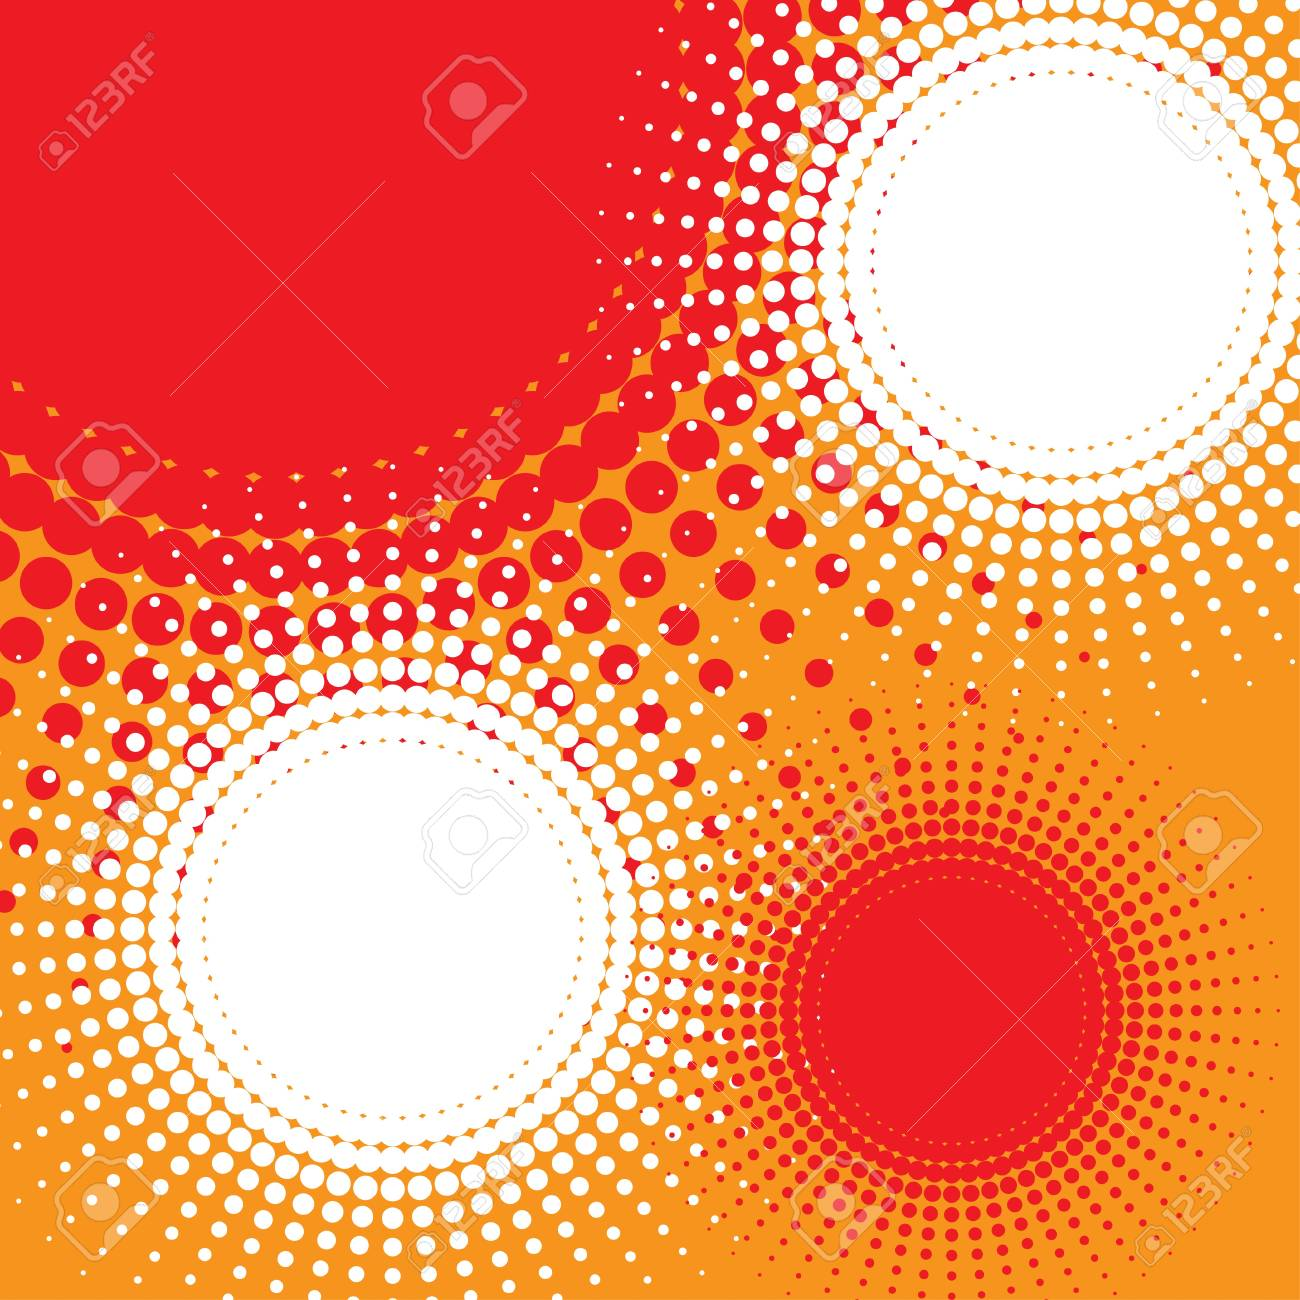 abstract background  halftone Stock Photo - 17098619